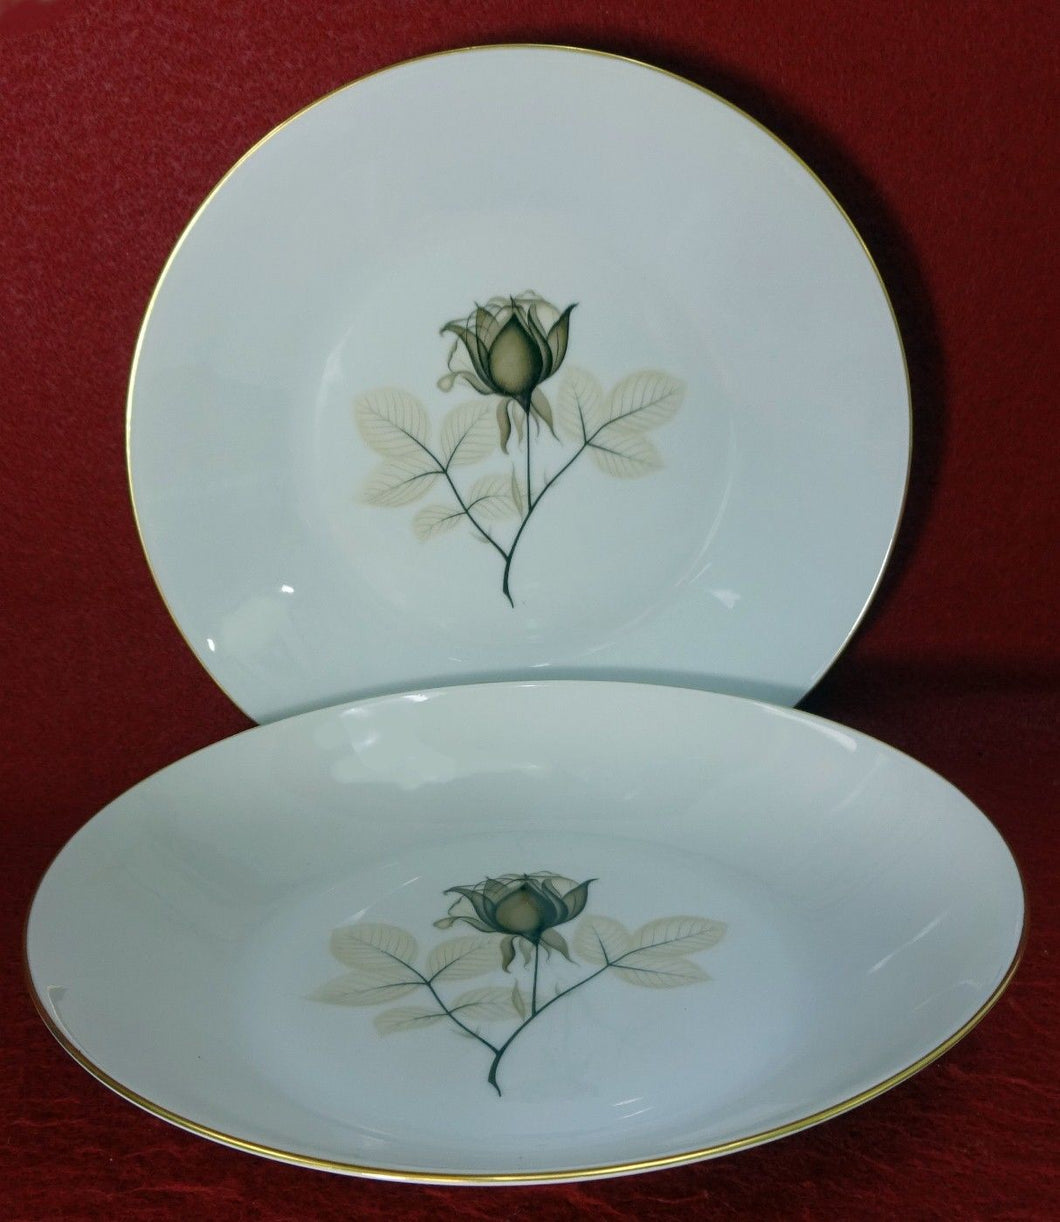 ROSENTHAL china SHADOW ROSE pattern Soup or Salad Bowl - Set of Two (2) - 8-7/8